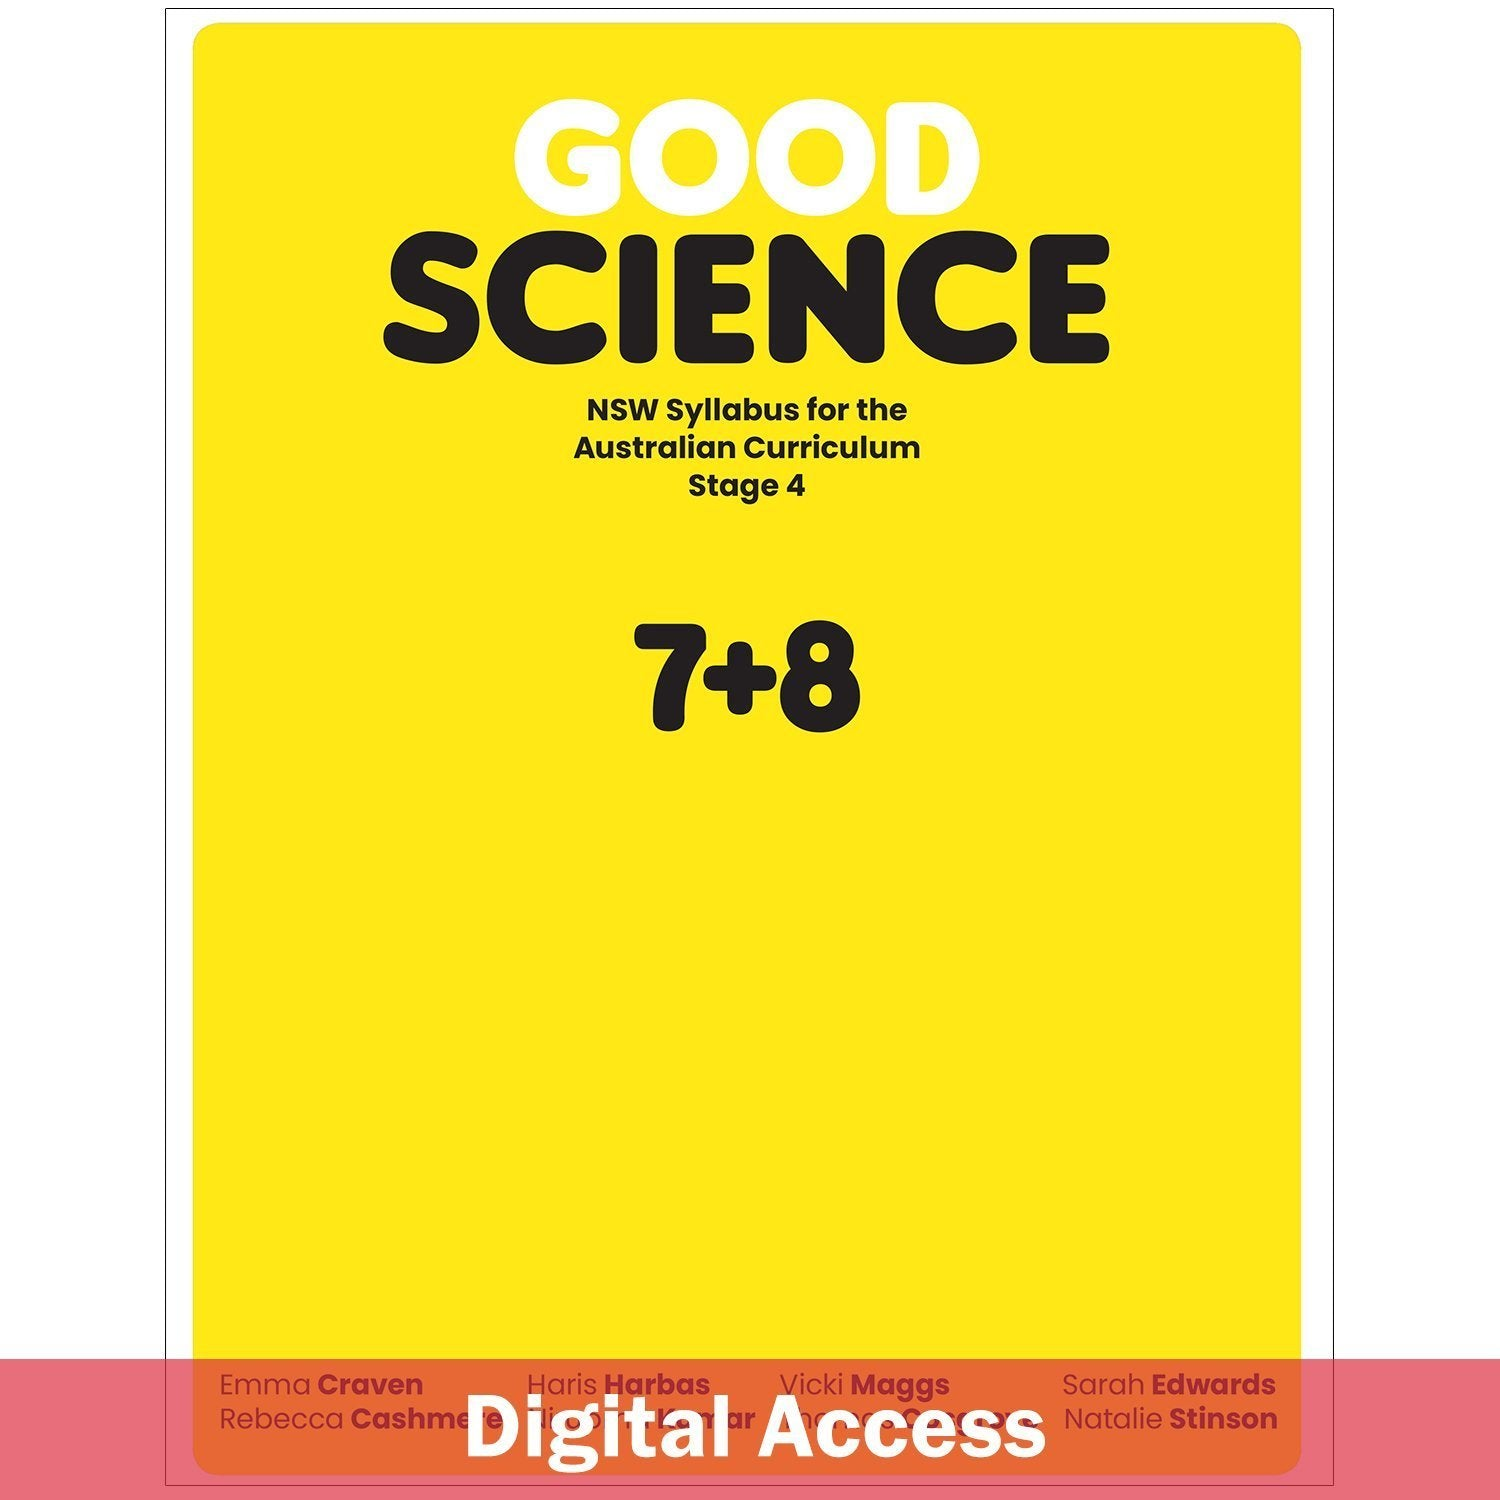 Good Science NSW Syllabus Stage 4 Teacher Digital Access